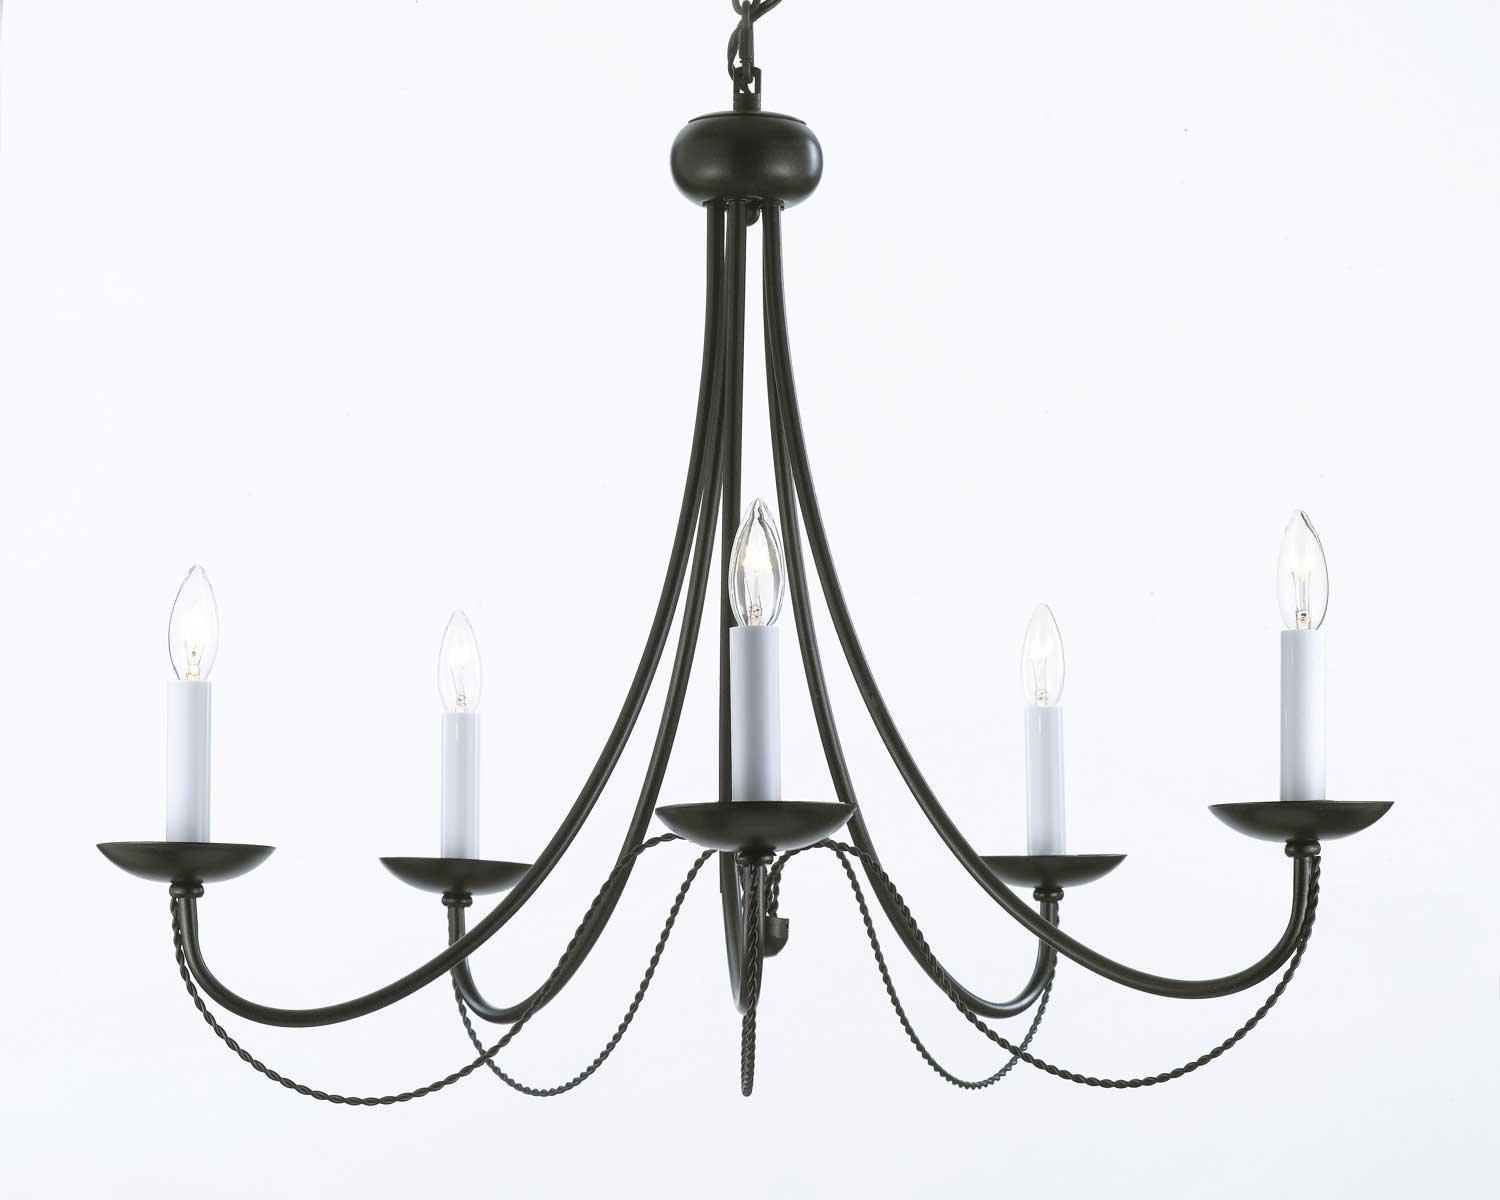 Wrought Iron Chandelier Lighting H22 x W26